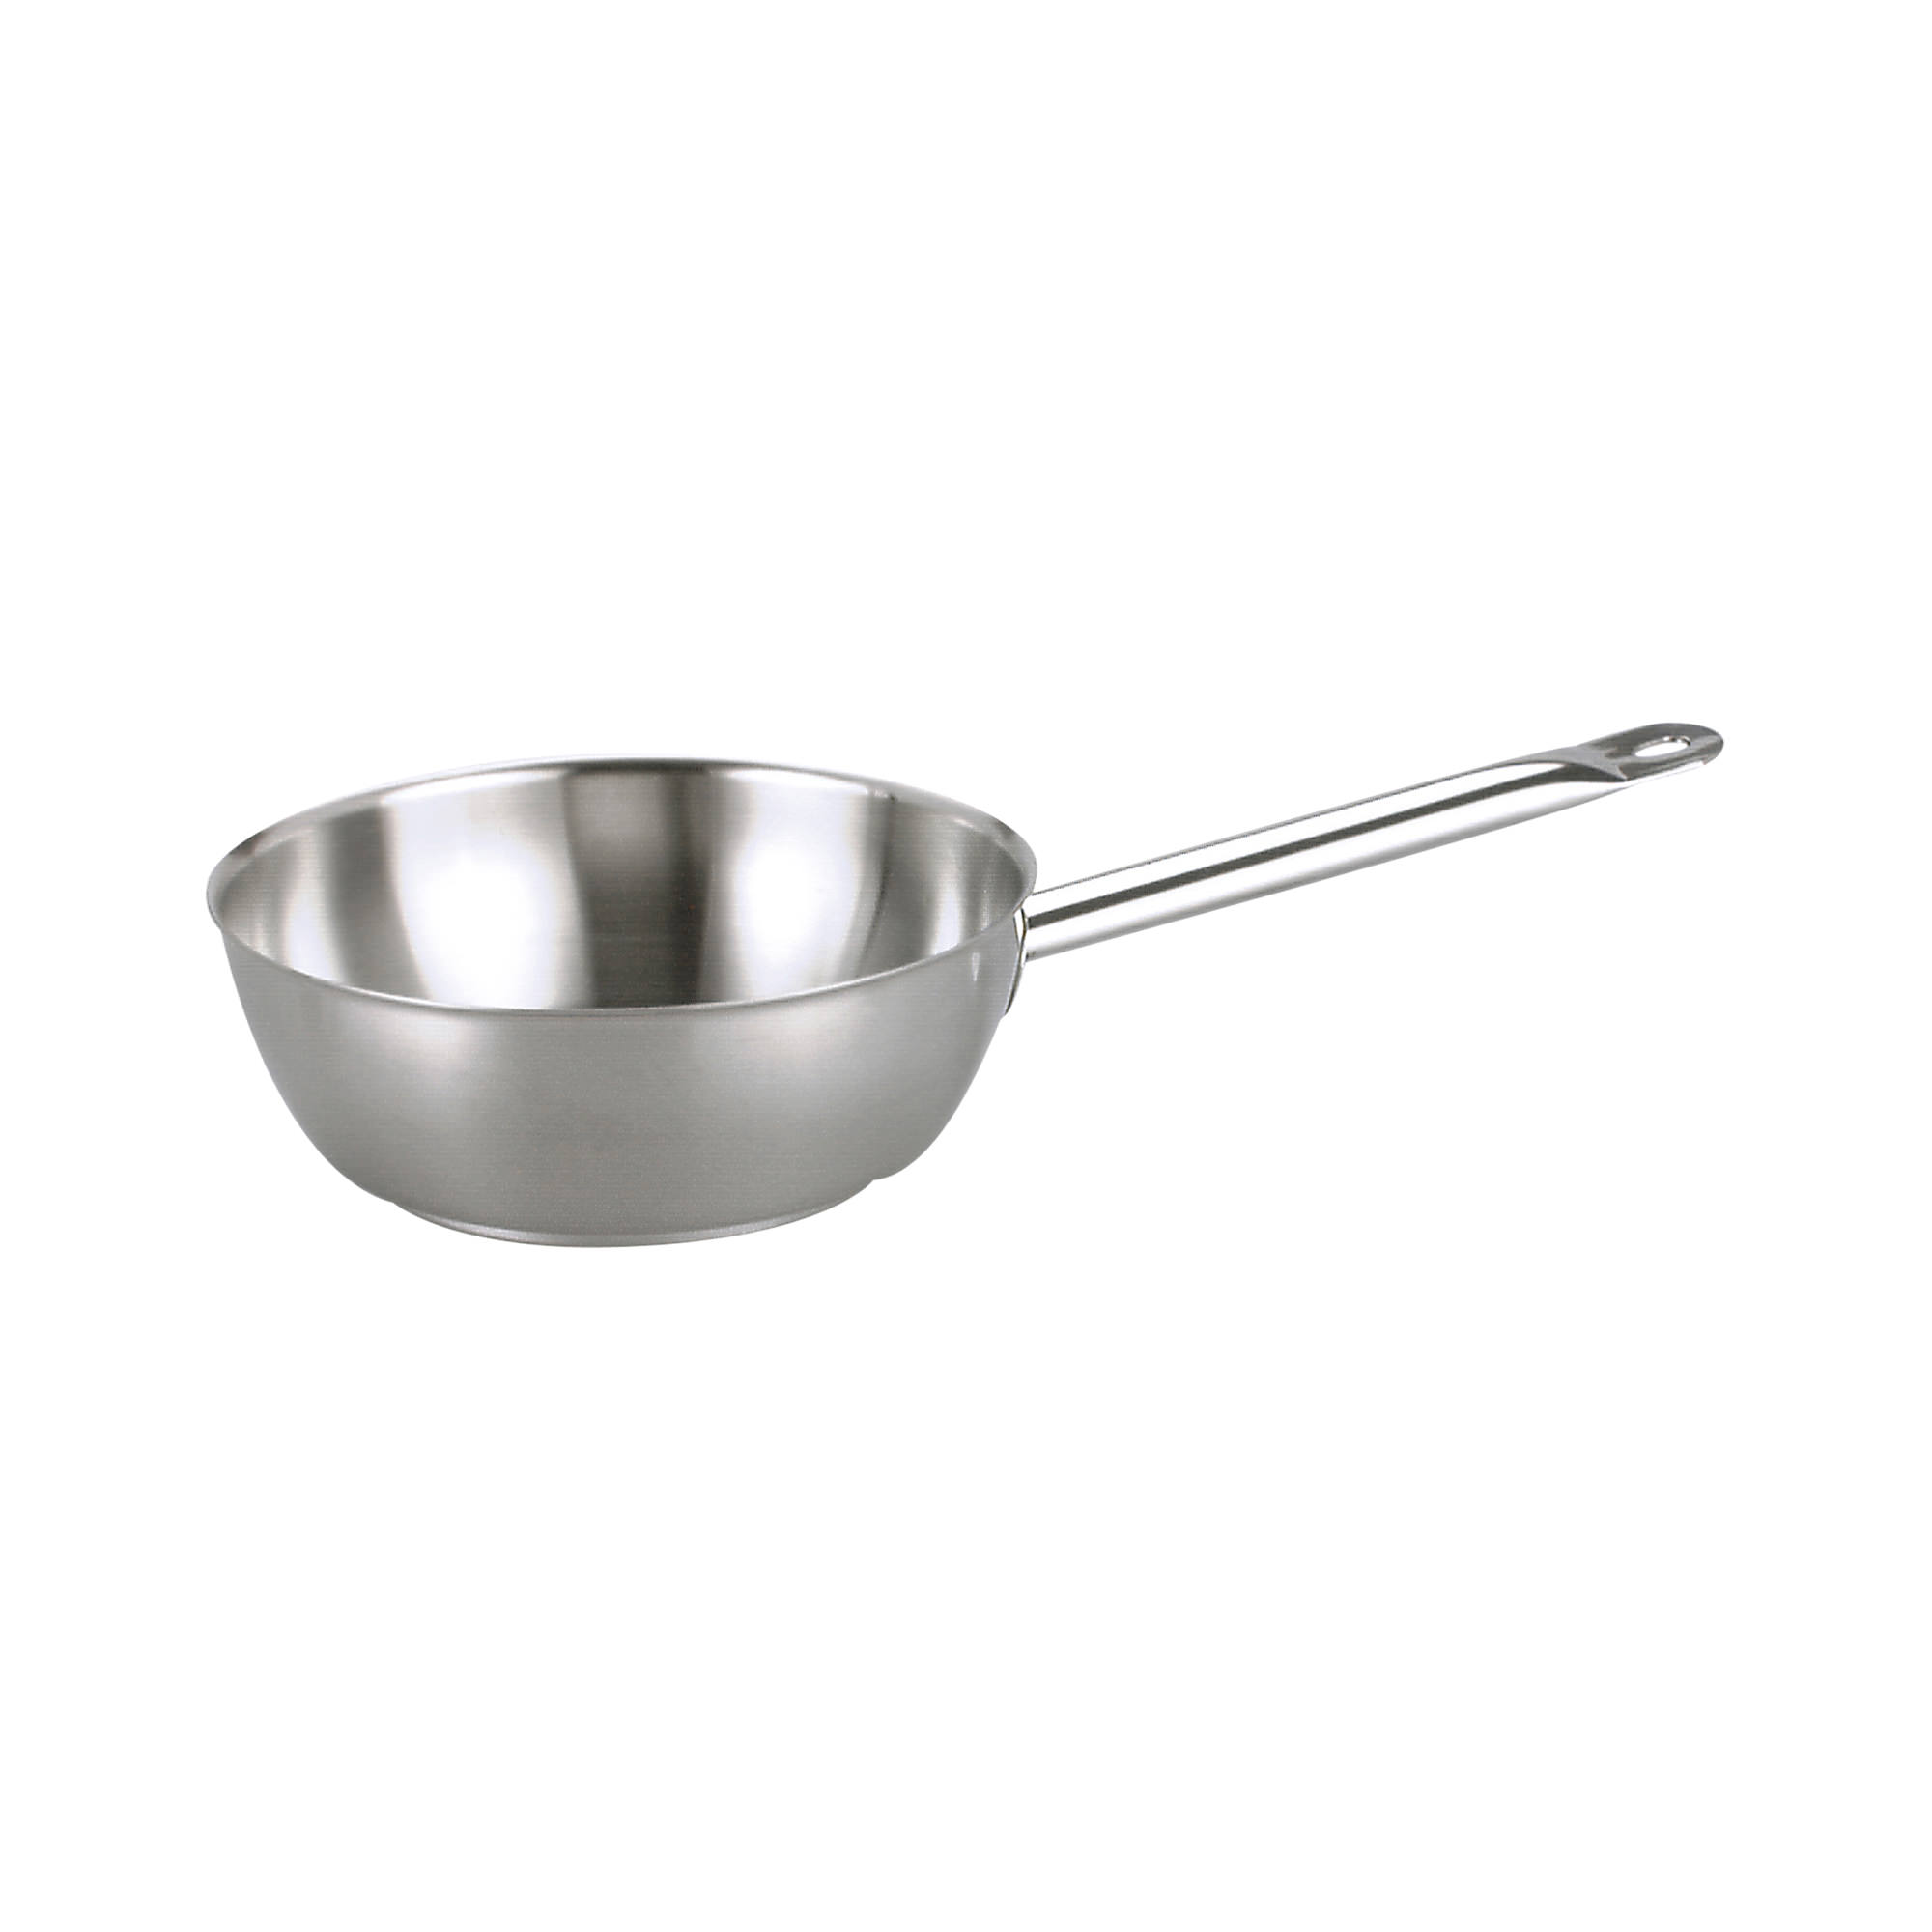 Chef Inox Elite Stainless Steel Sauteuse 24cm